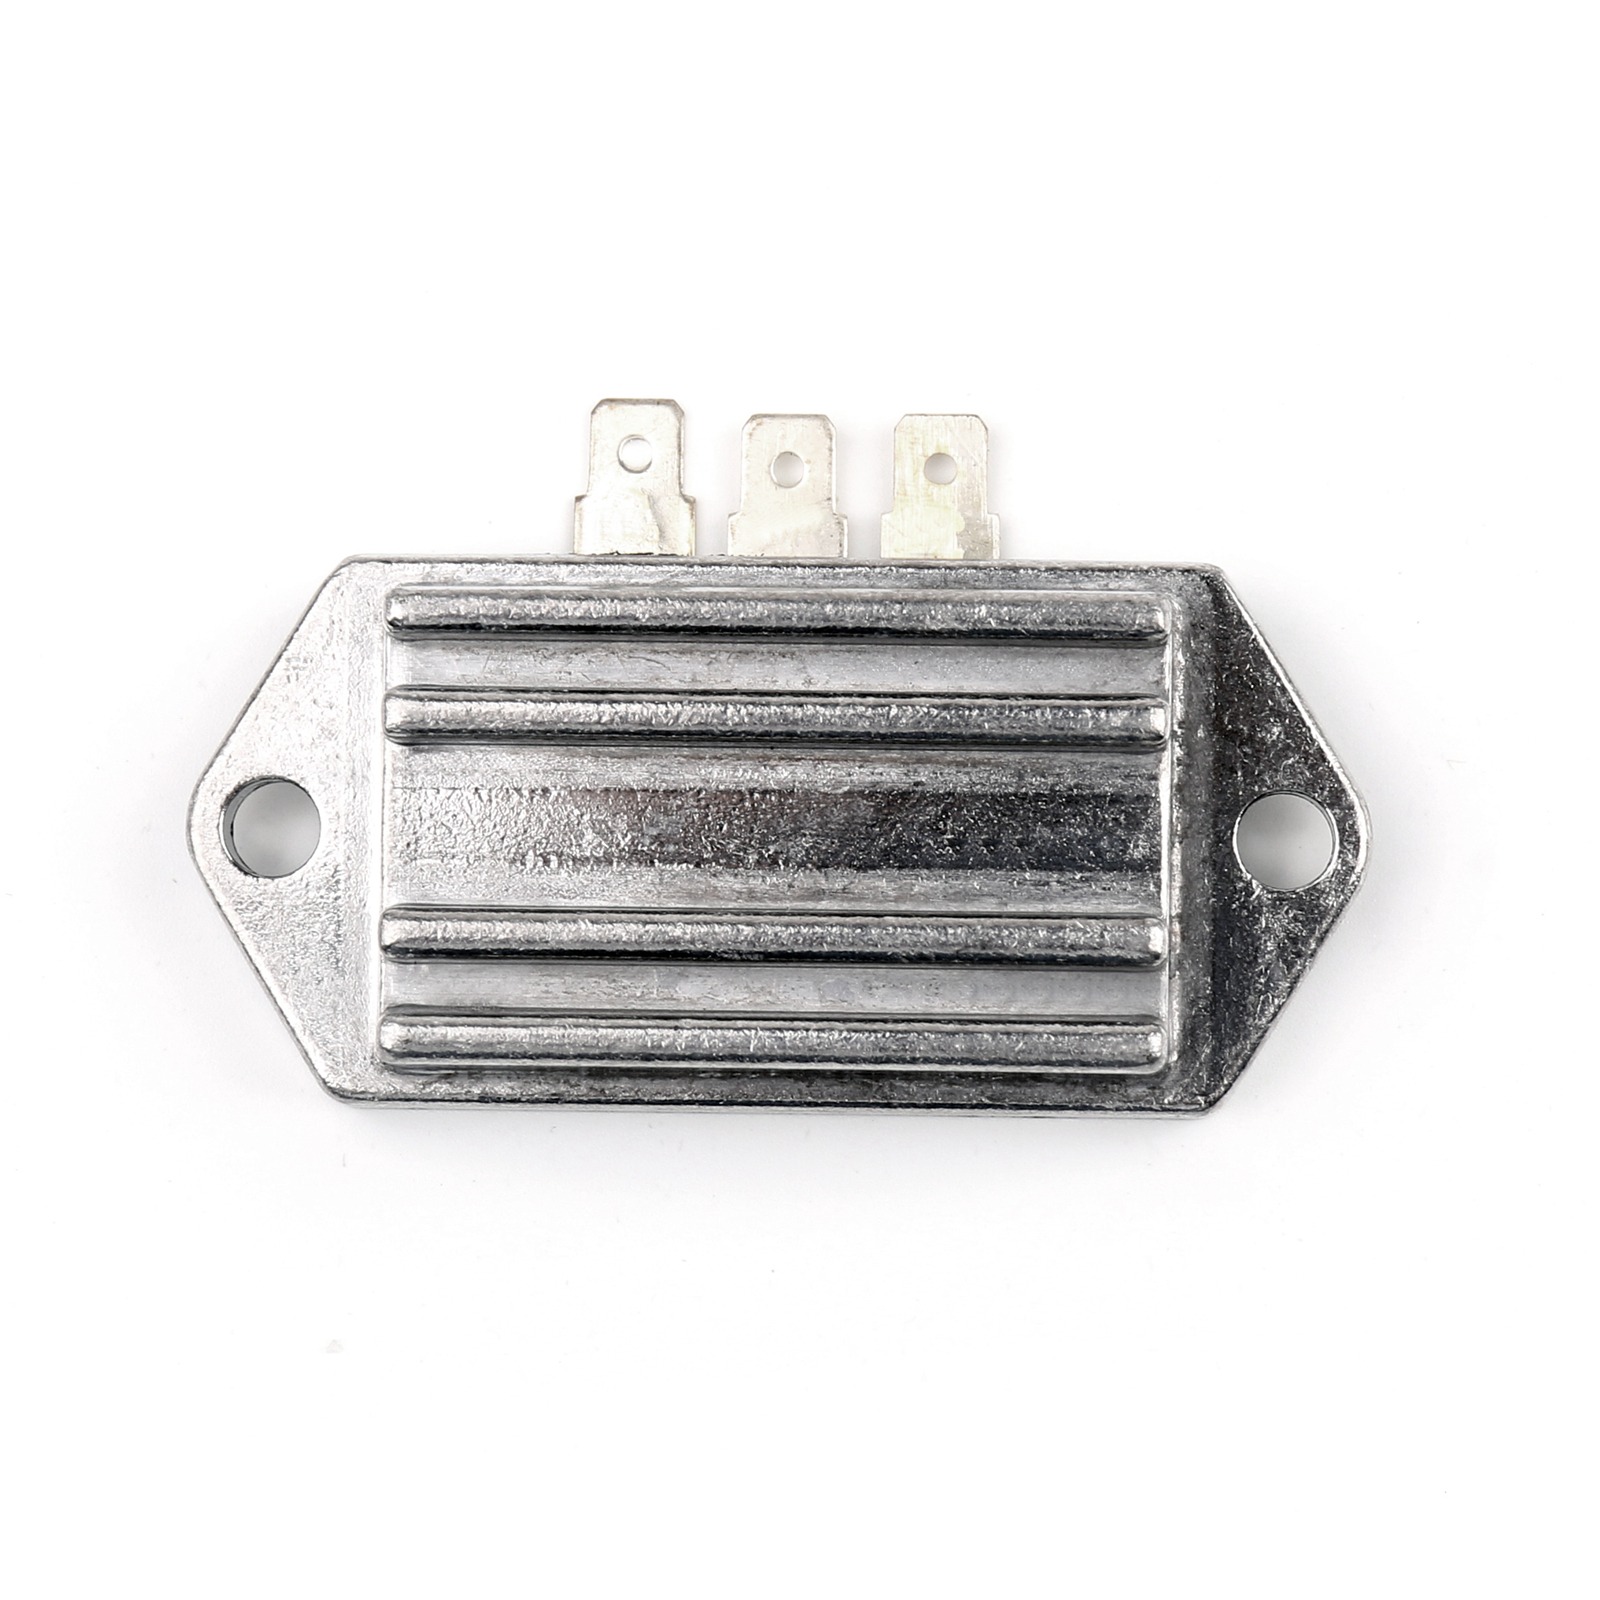 Kohler Command Voltage Regulator : Voltage regulator rectifier for kohler cv